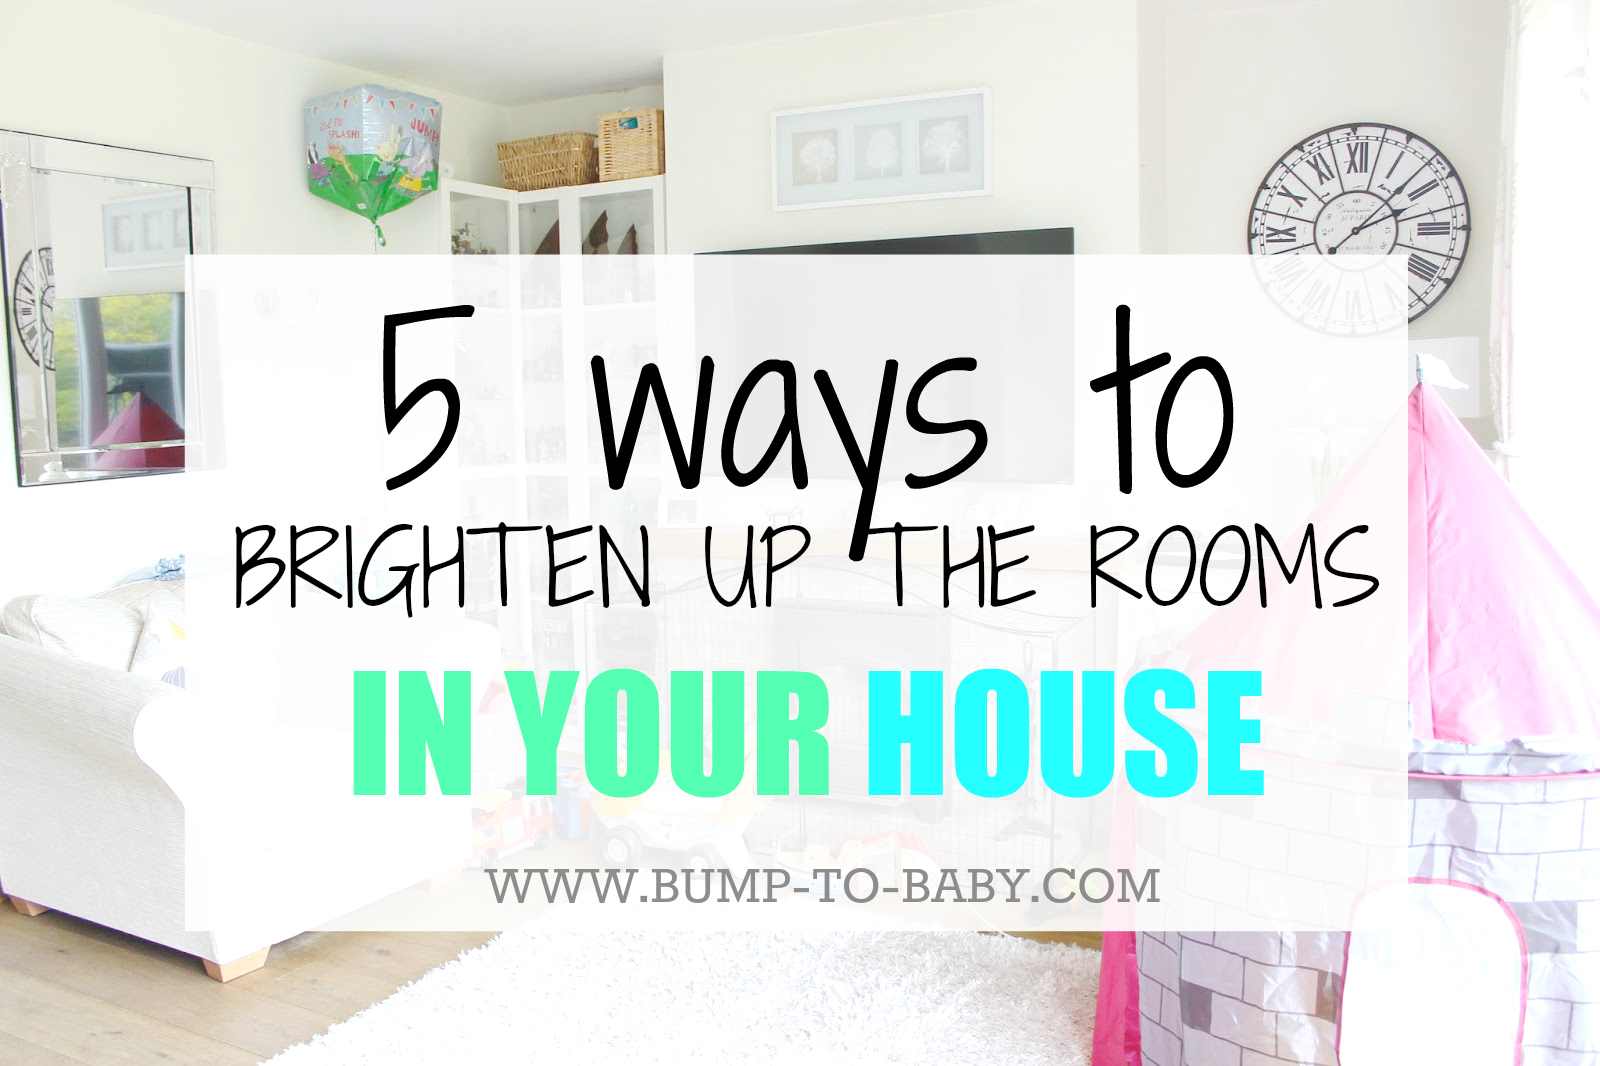 brighten rooms in house up